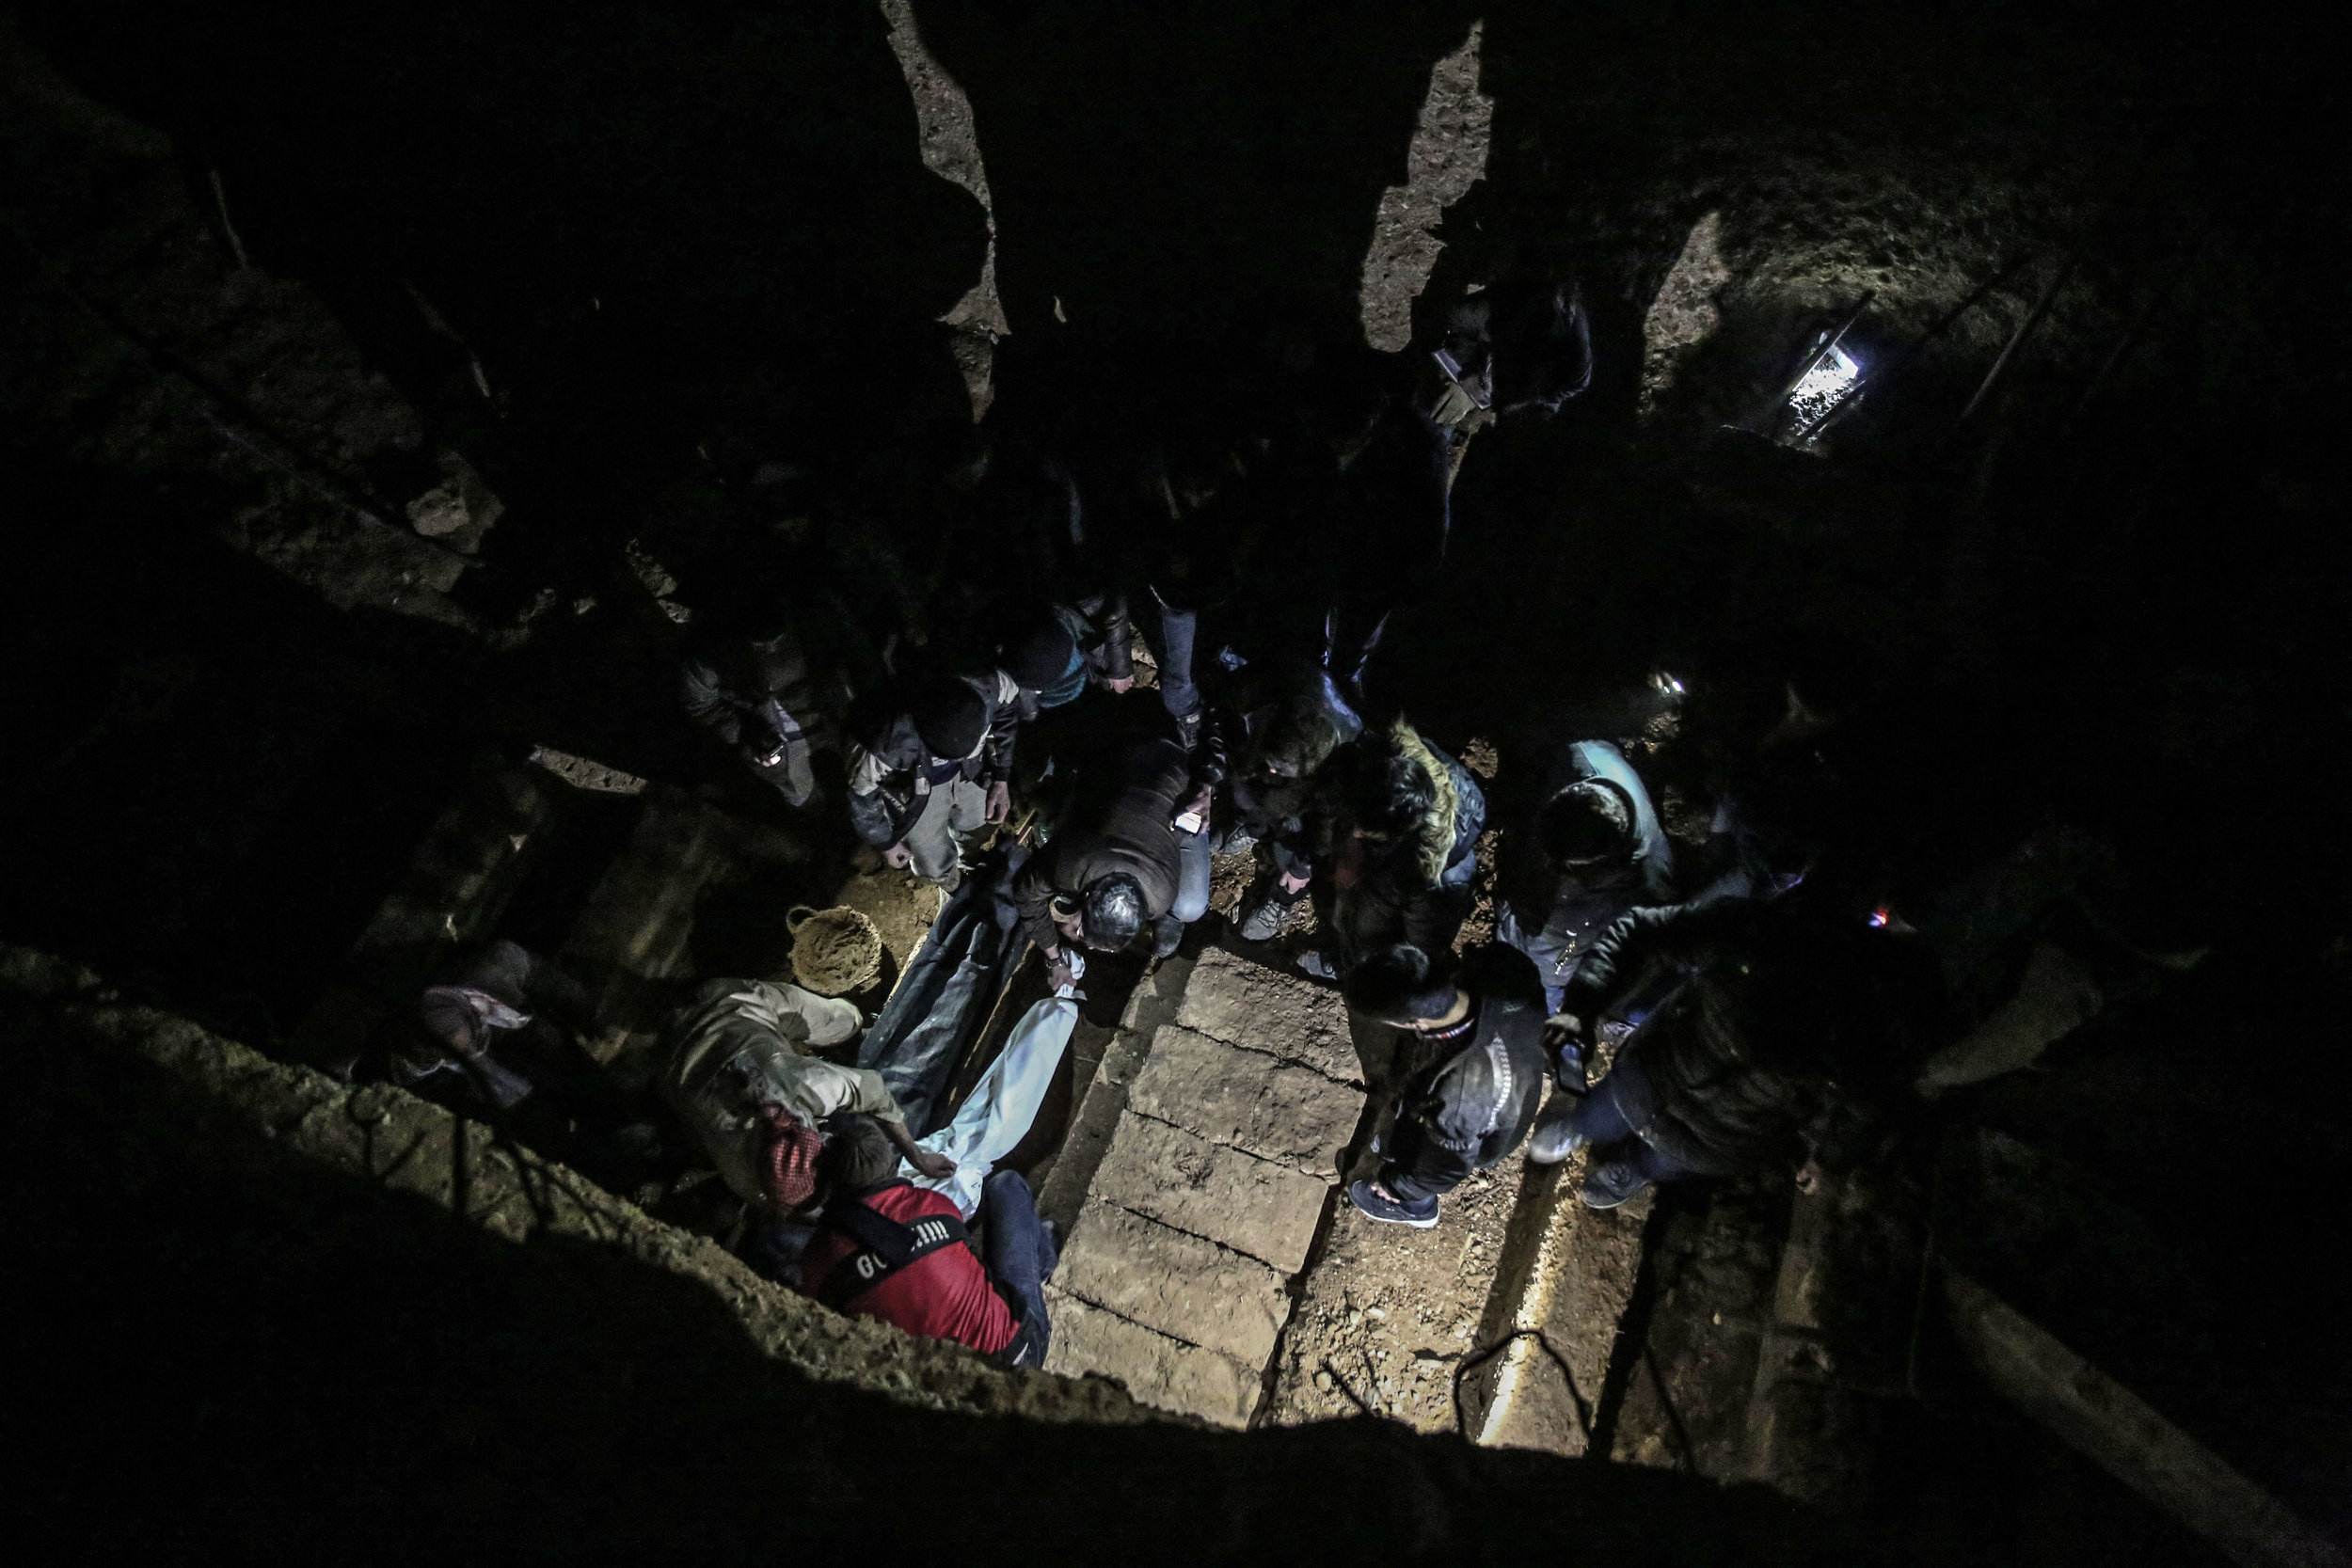 - Men gather to bury the bodies of a family in a layered underground cemetery.